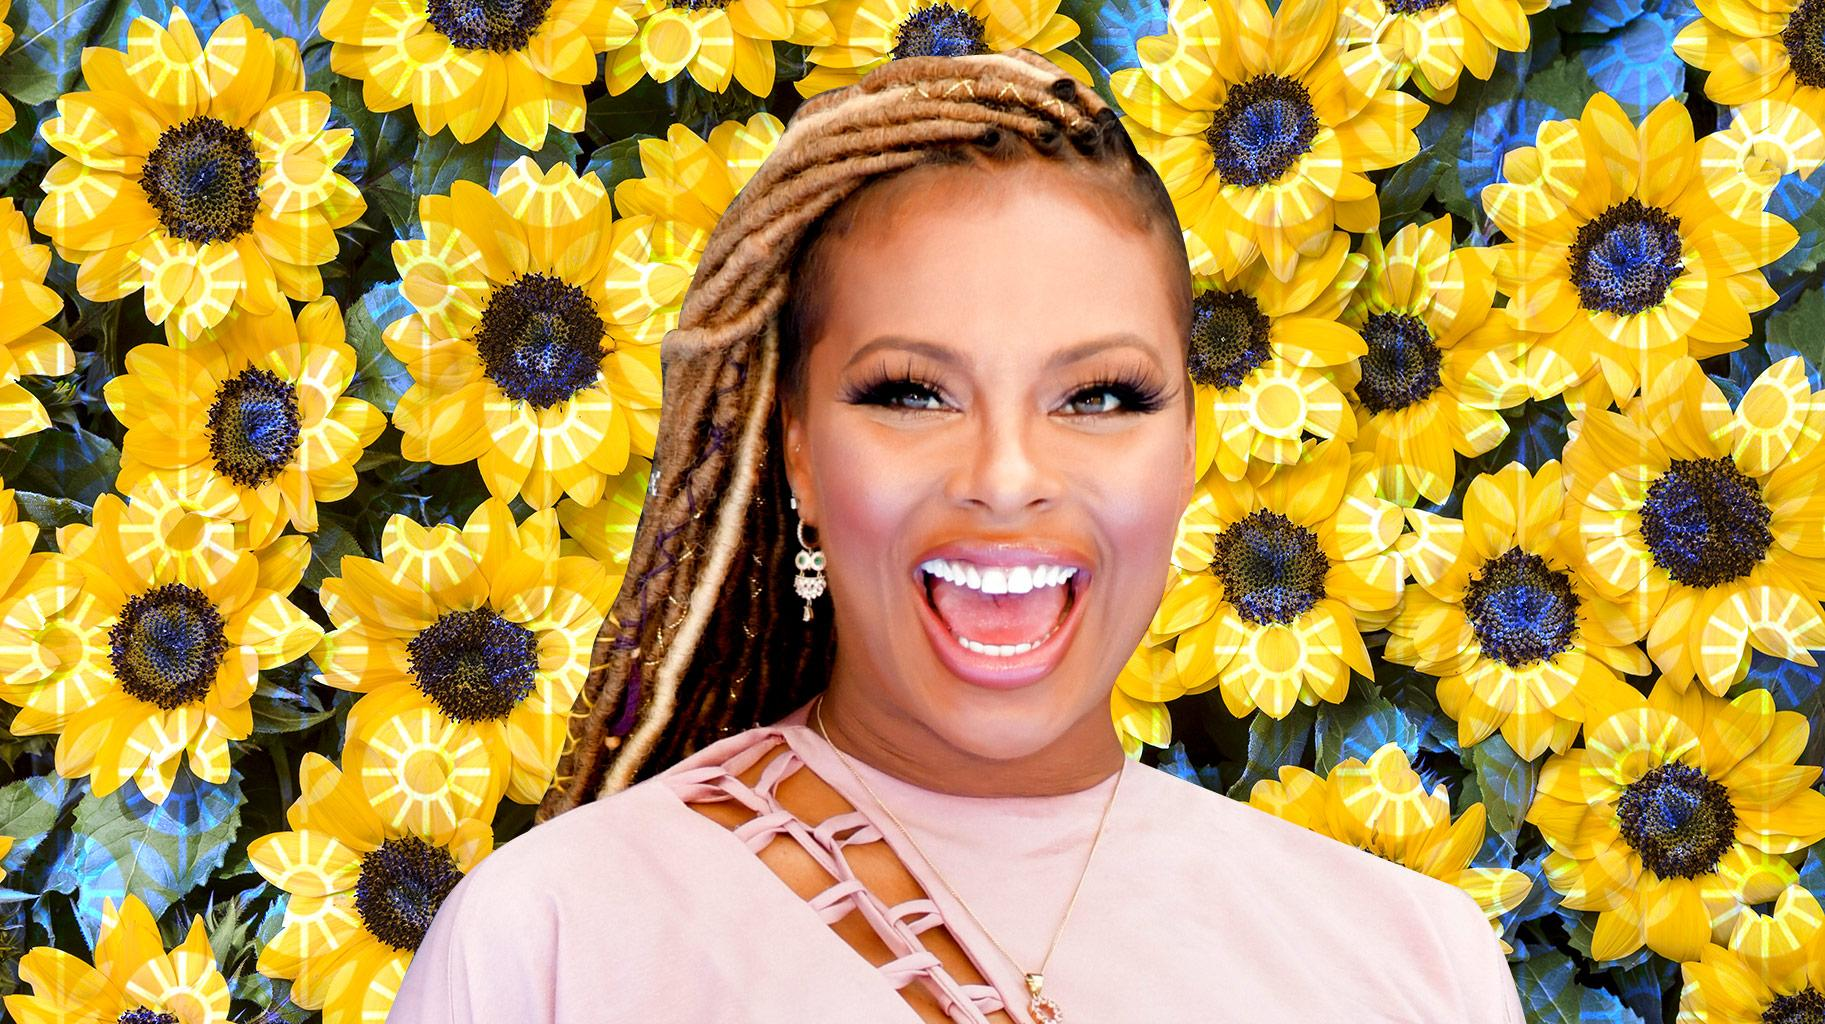 Eva Marcille Shares A Sweet Video Featuring Her Daughter Marley